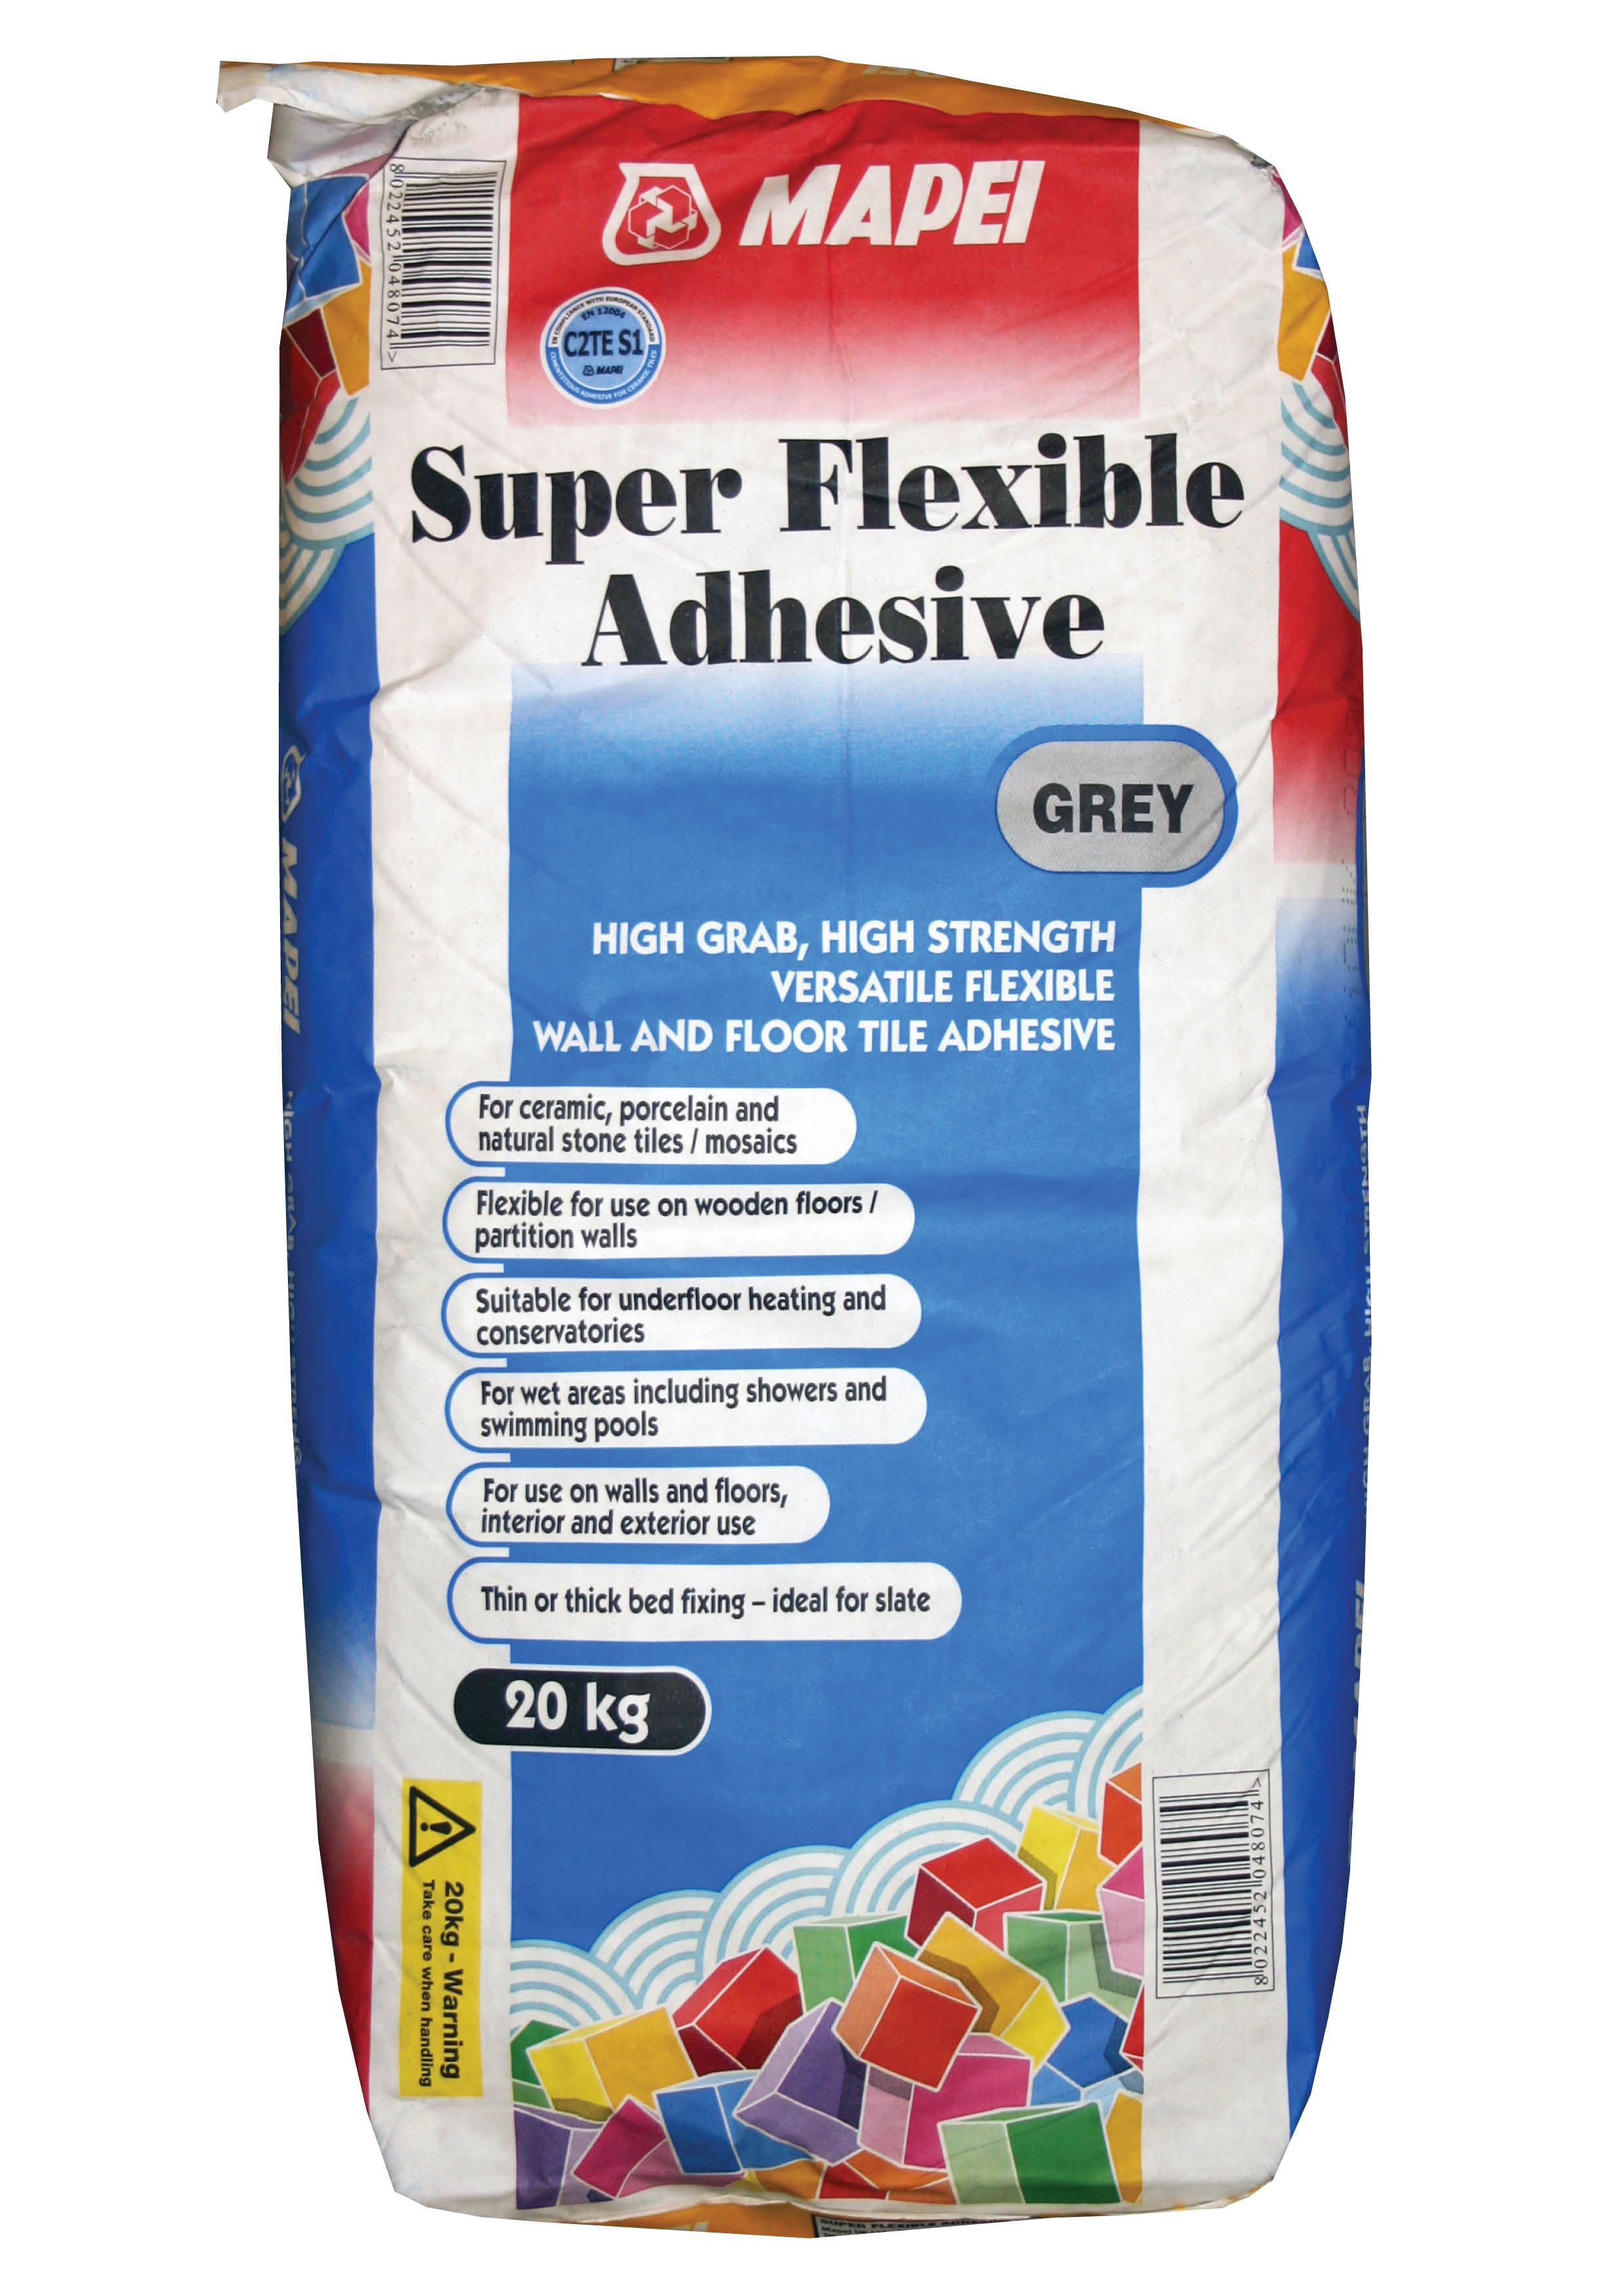 Mapei super flexible powder adhesive grey 20kg departments diy mapei super flexible powder adhesive grey 20kg departments diy at bq dailygadgetfo Gallery